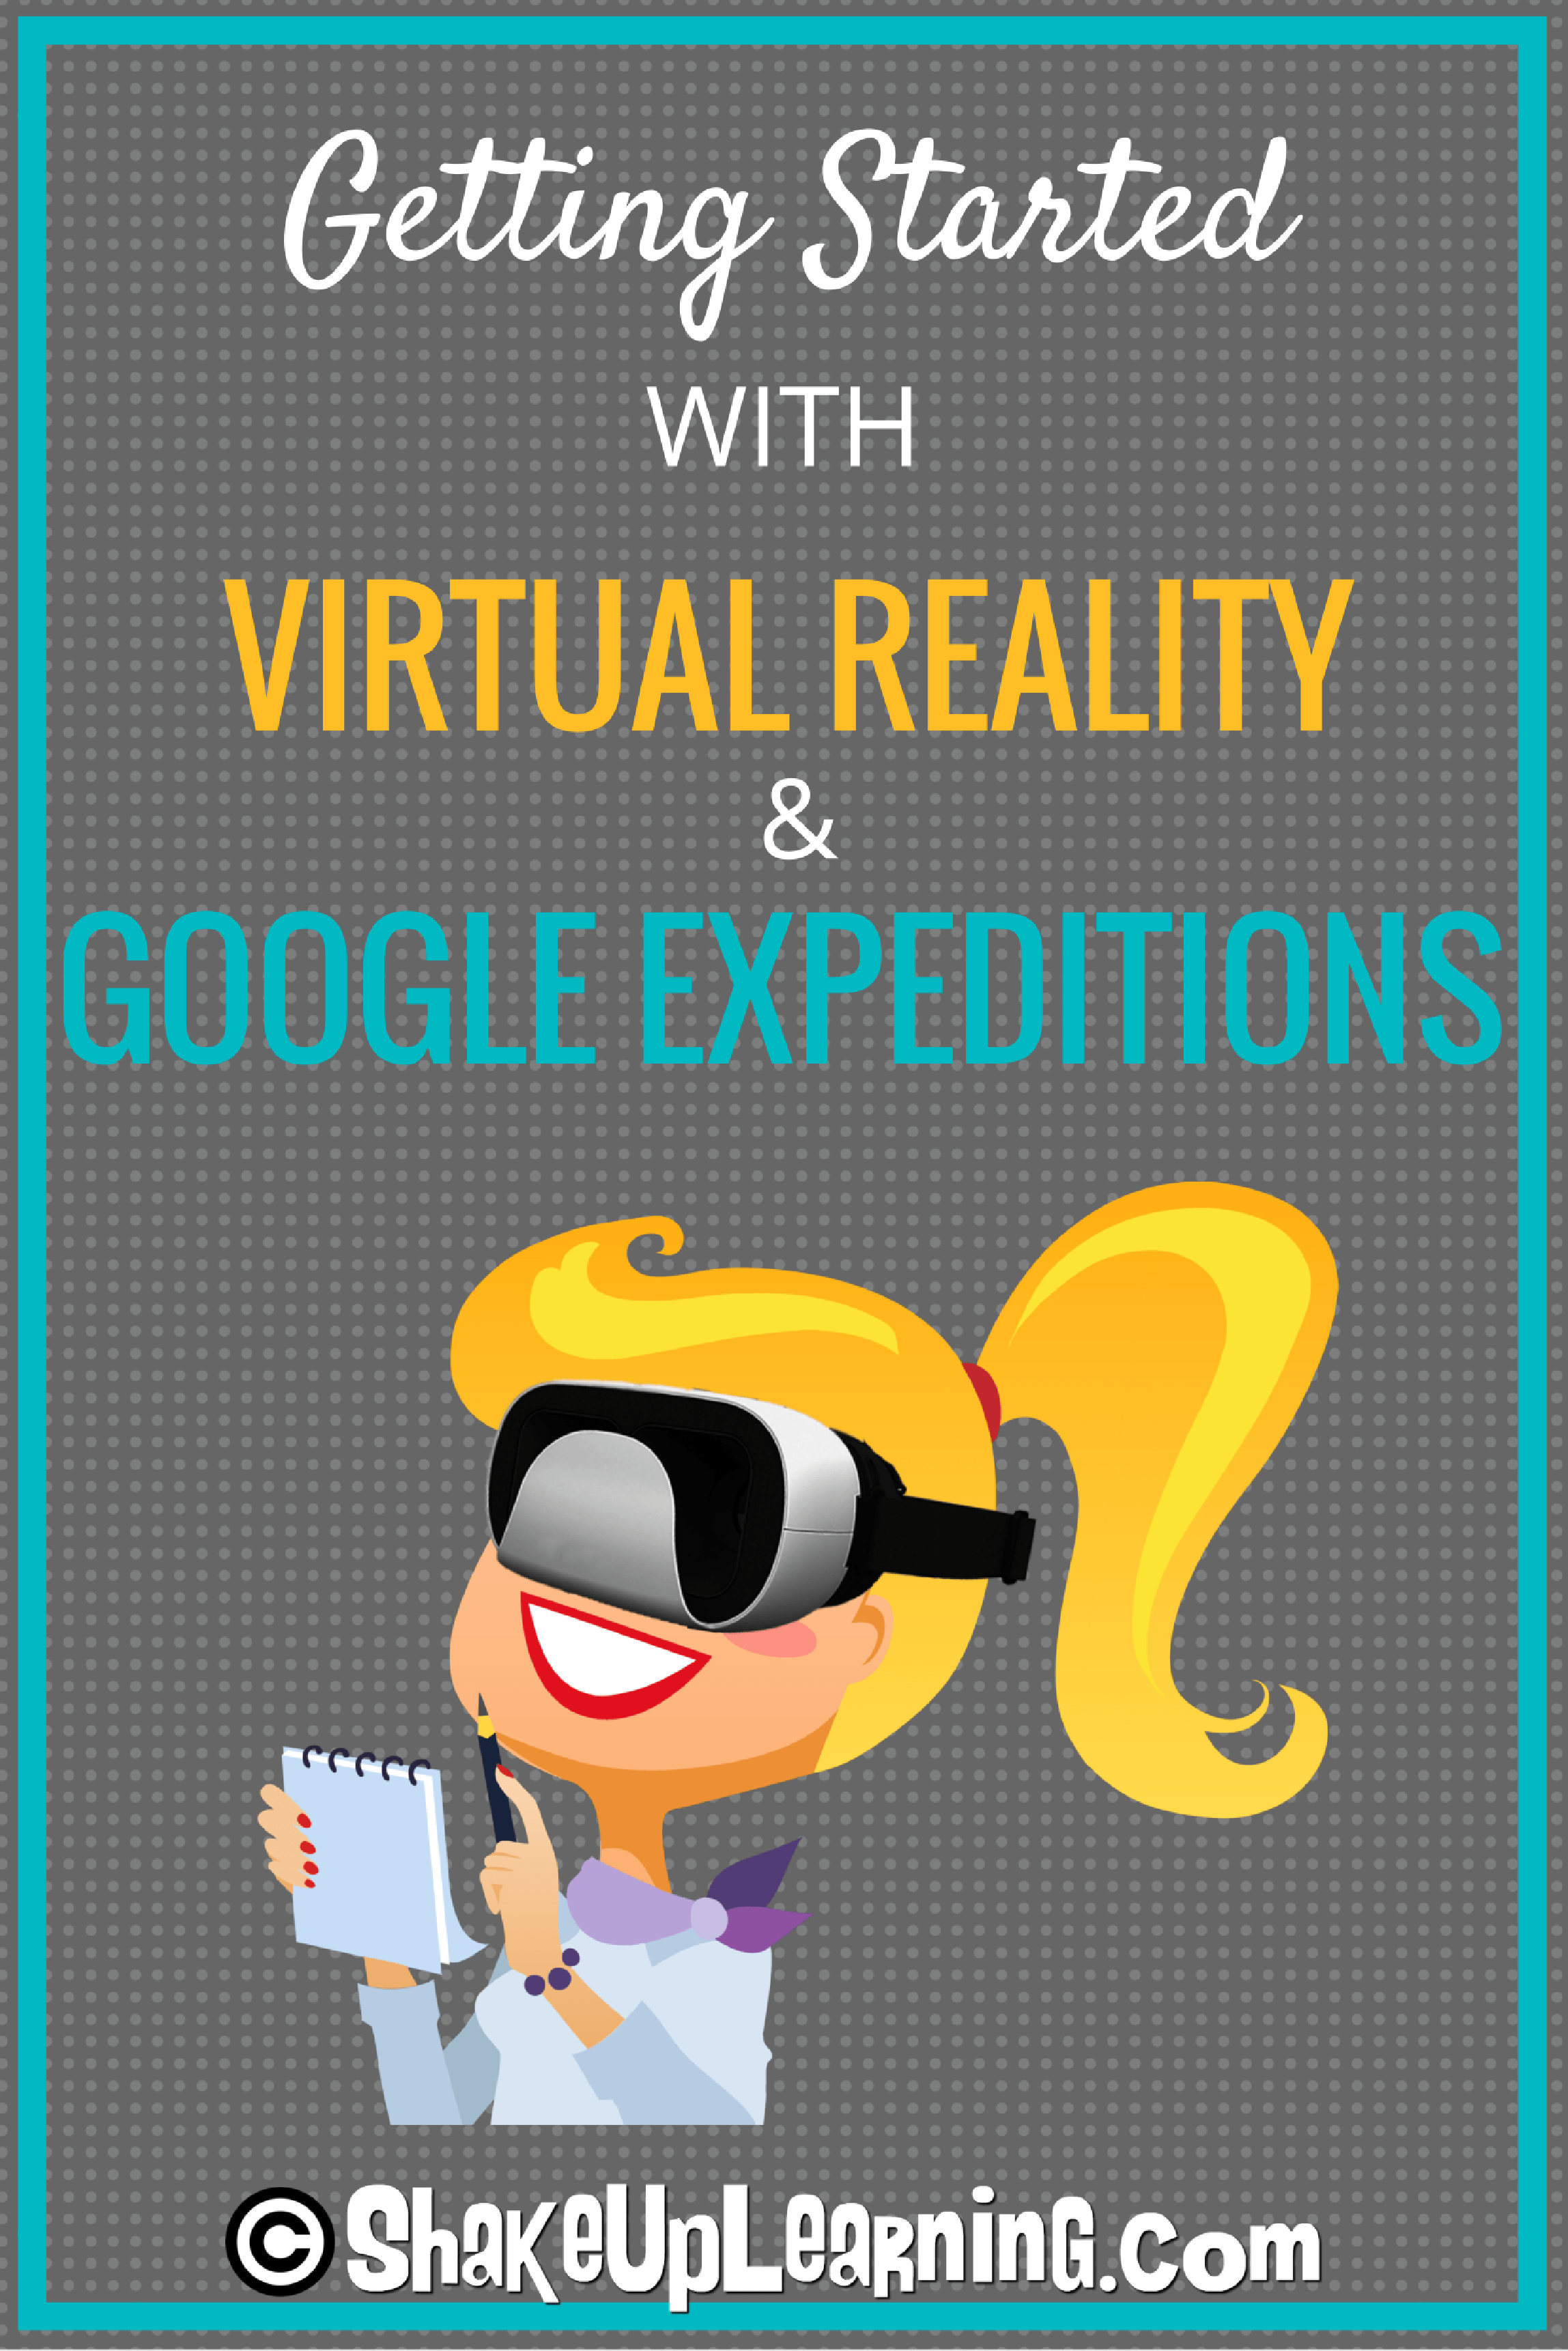 Uncategorized www google com br google chrome android - Getting Started With Google Expeditions And Virtual Reality